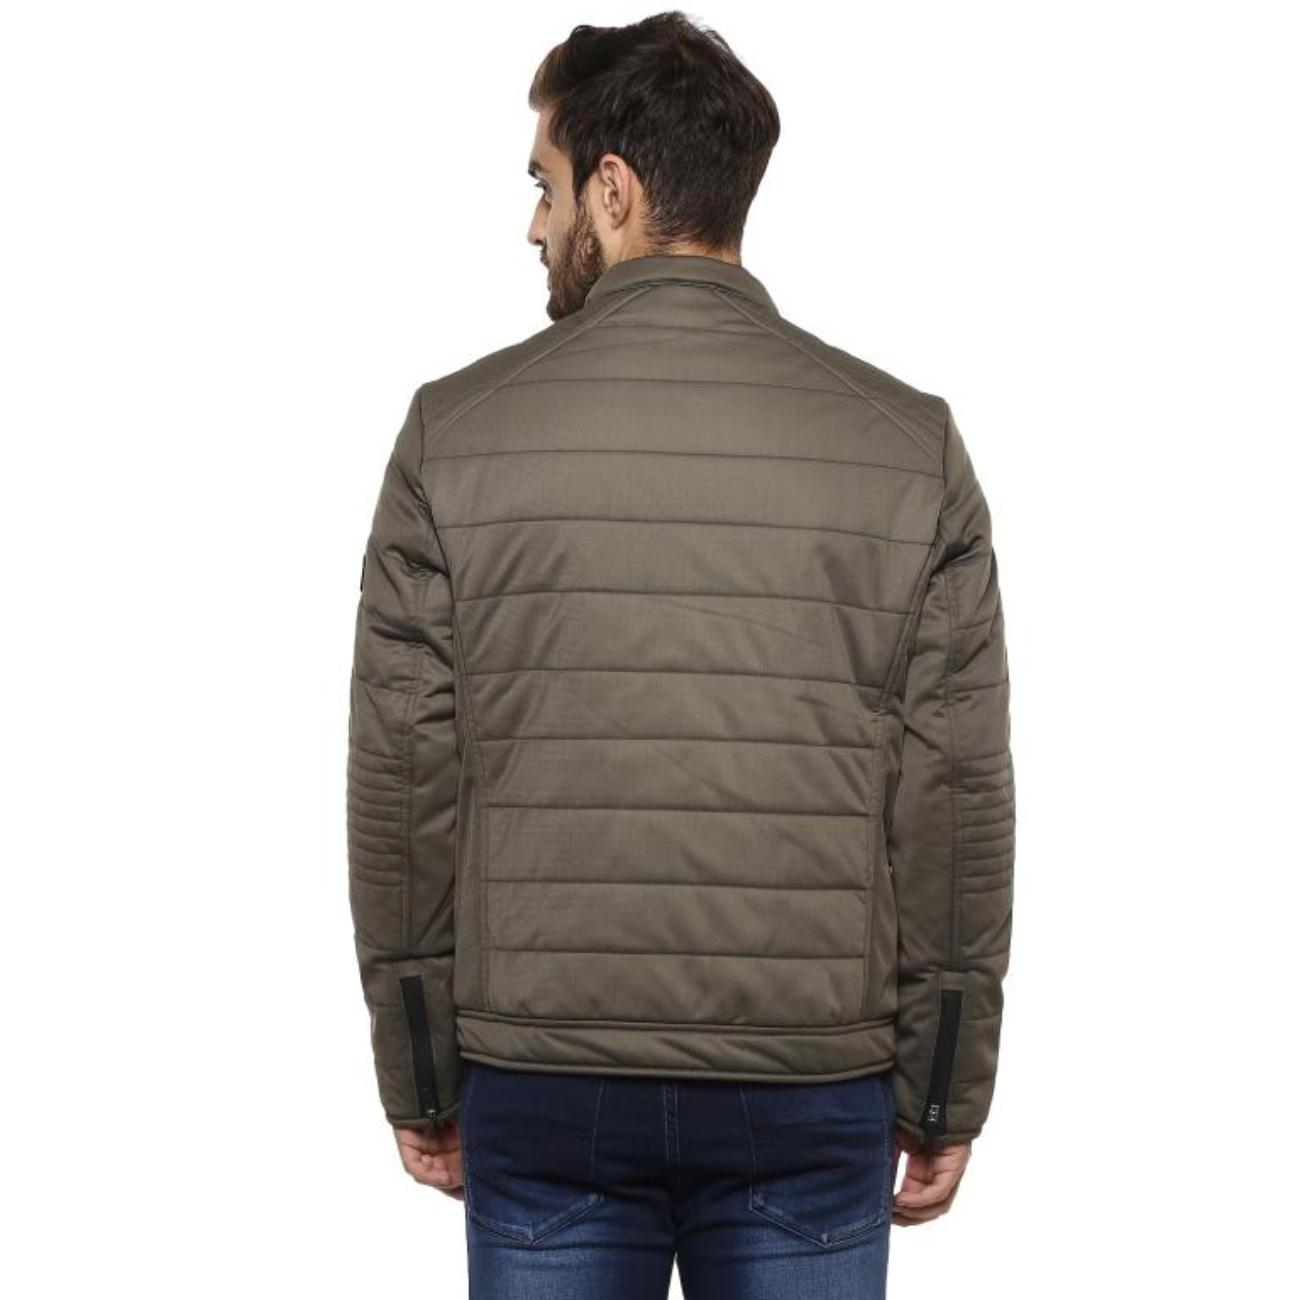 Shop Red Chief's Olive Jacket for Men